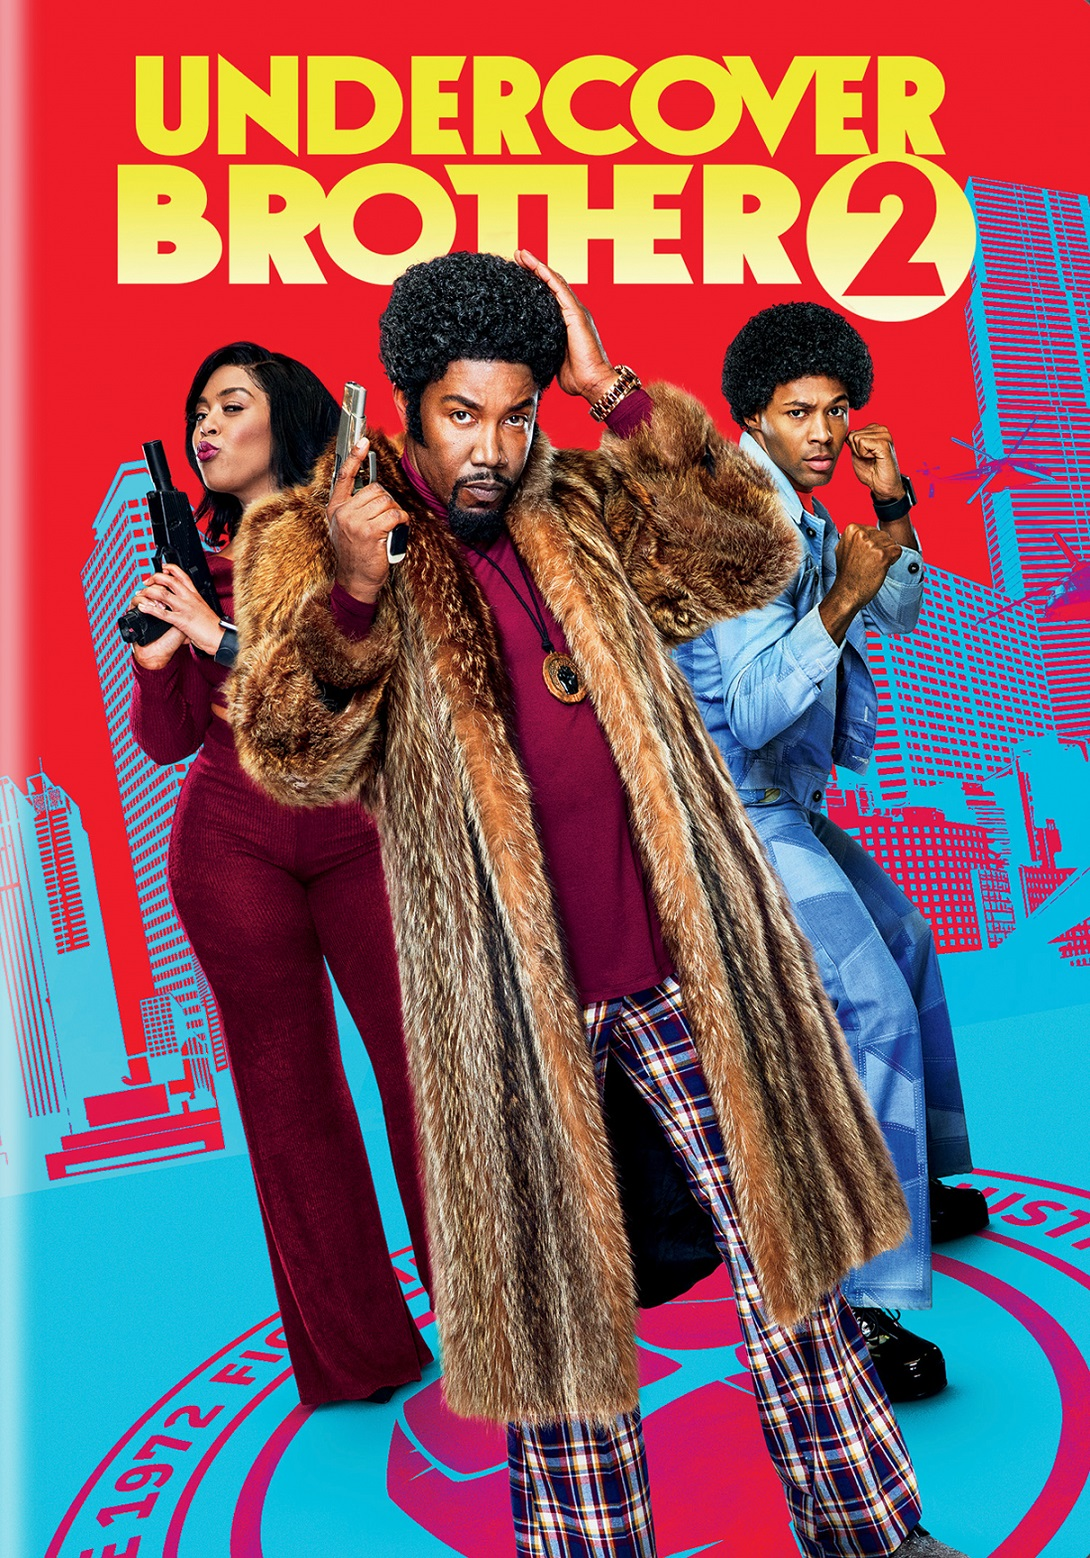 Undercover Brother 2 Trailer & Poster